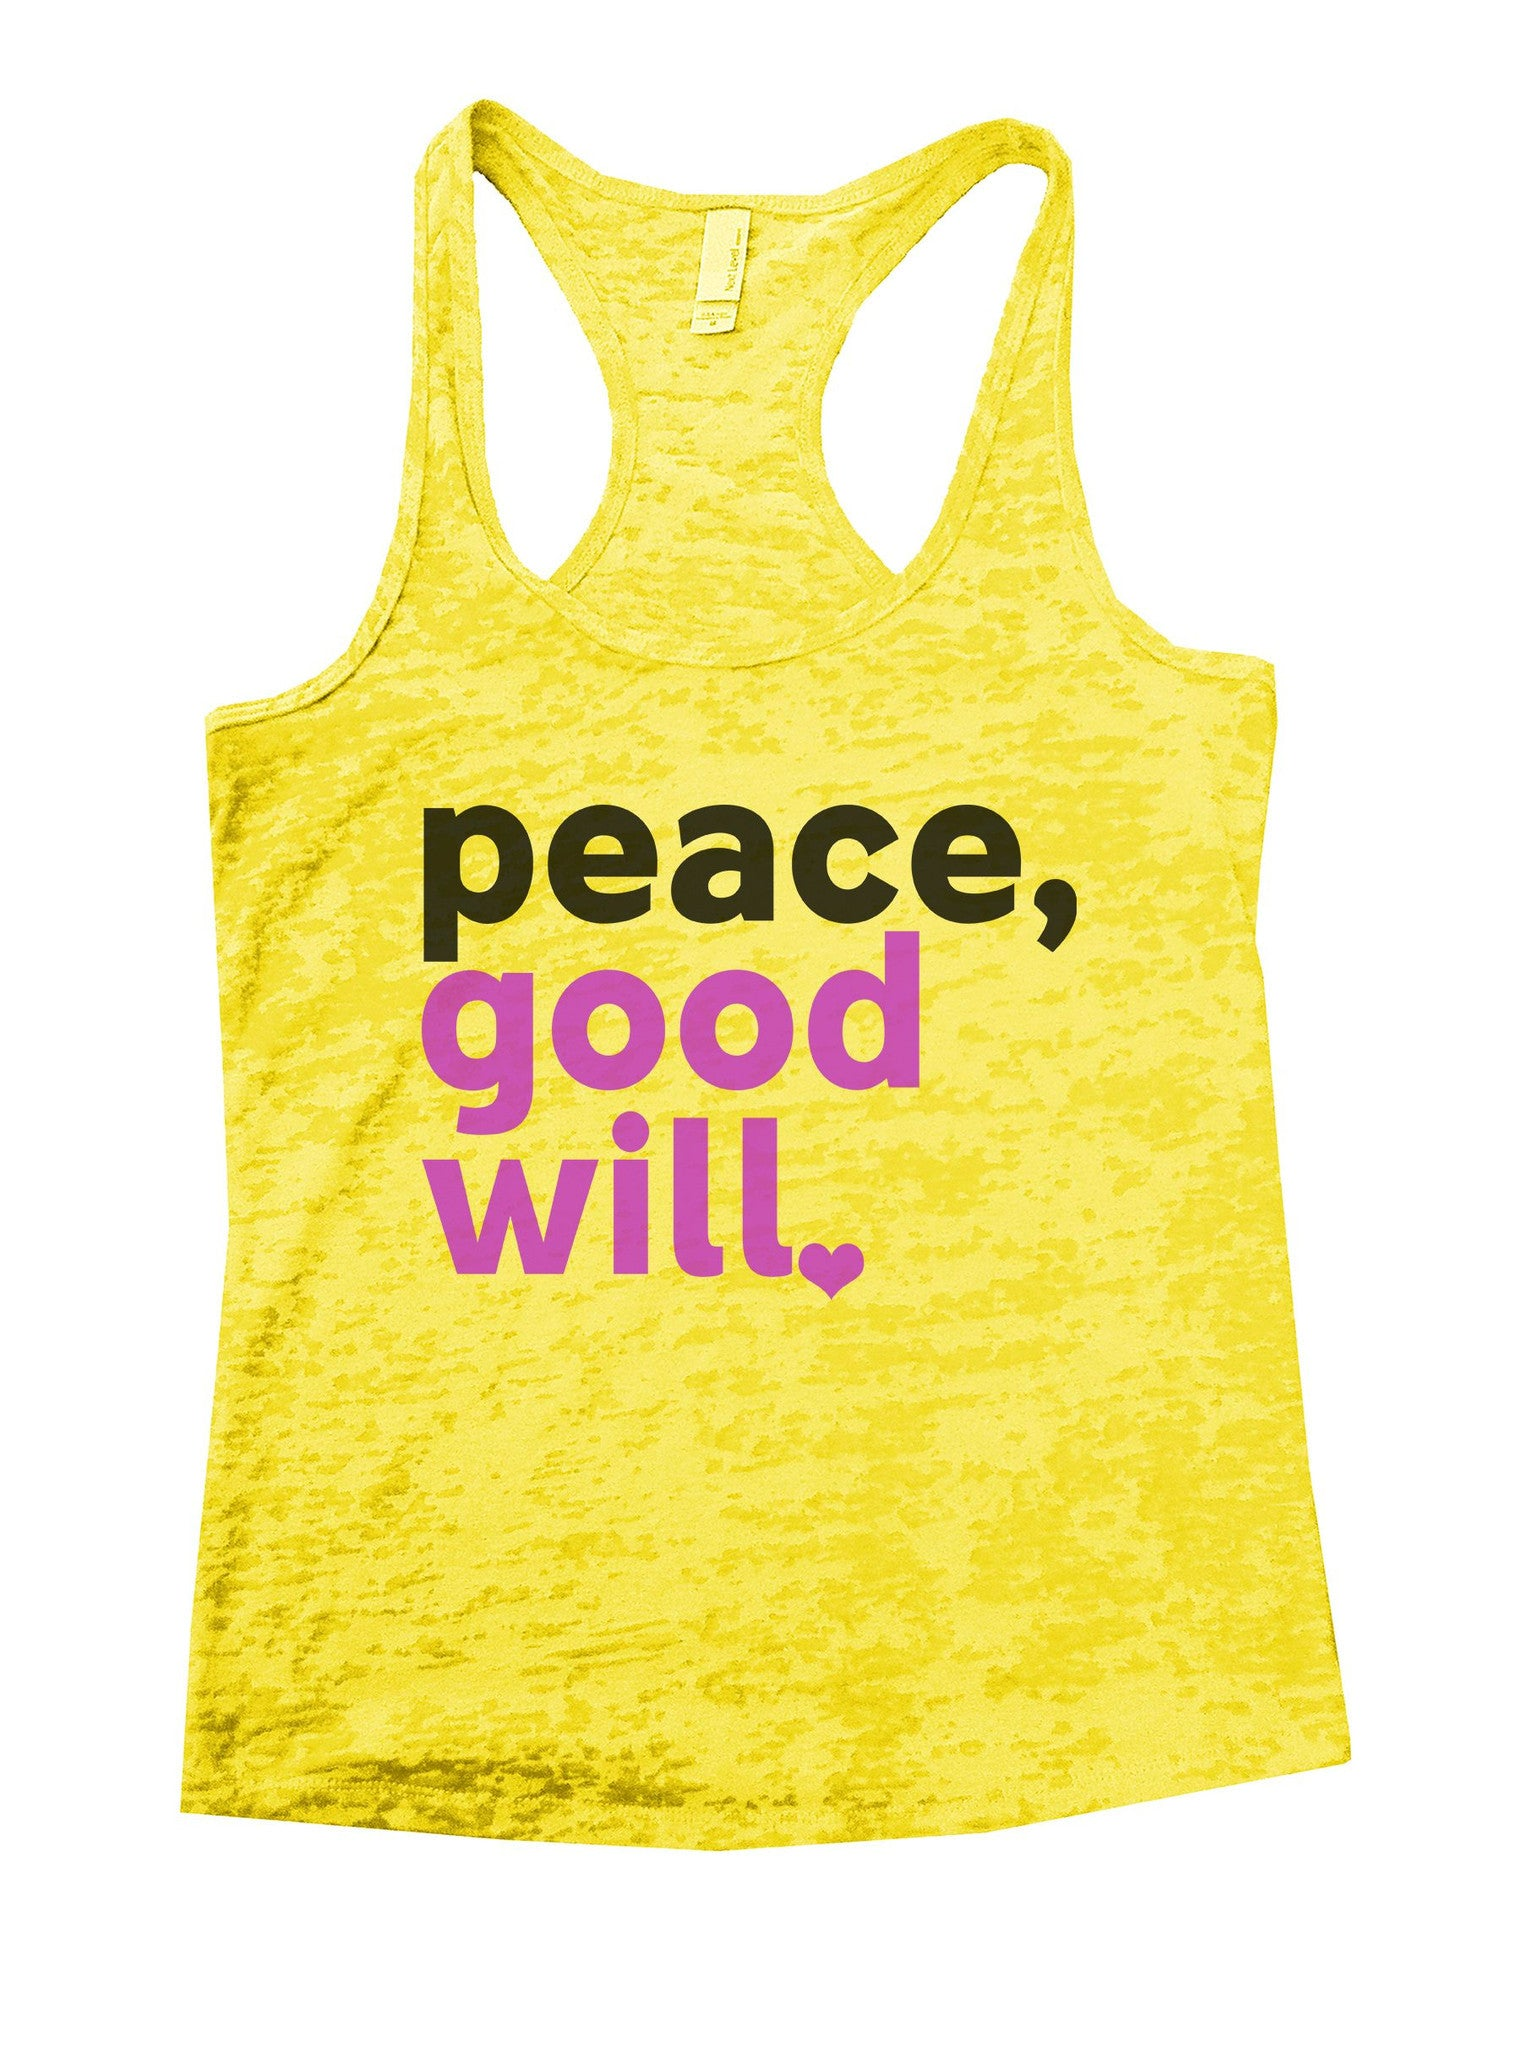 Peace, Good Will Burnout Tank Top By BurnoutTankTops.com - 1078 - Funny Shirts Tank Tops Burnouts and Triblends  - 7